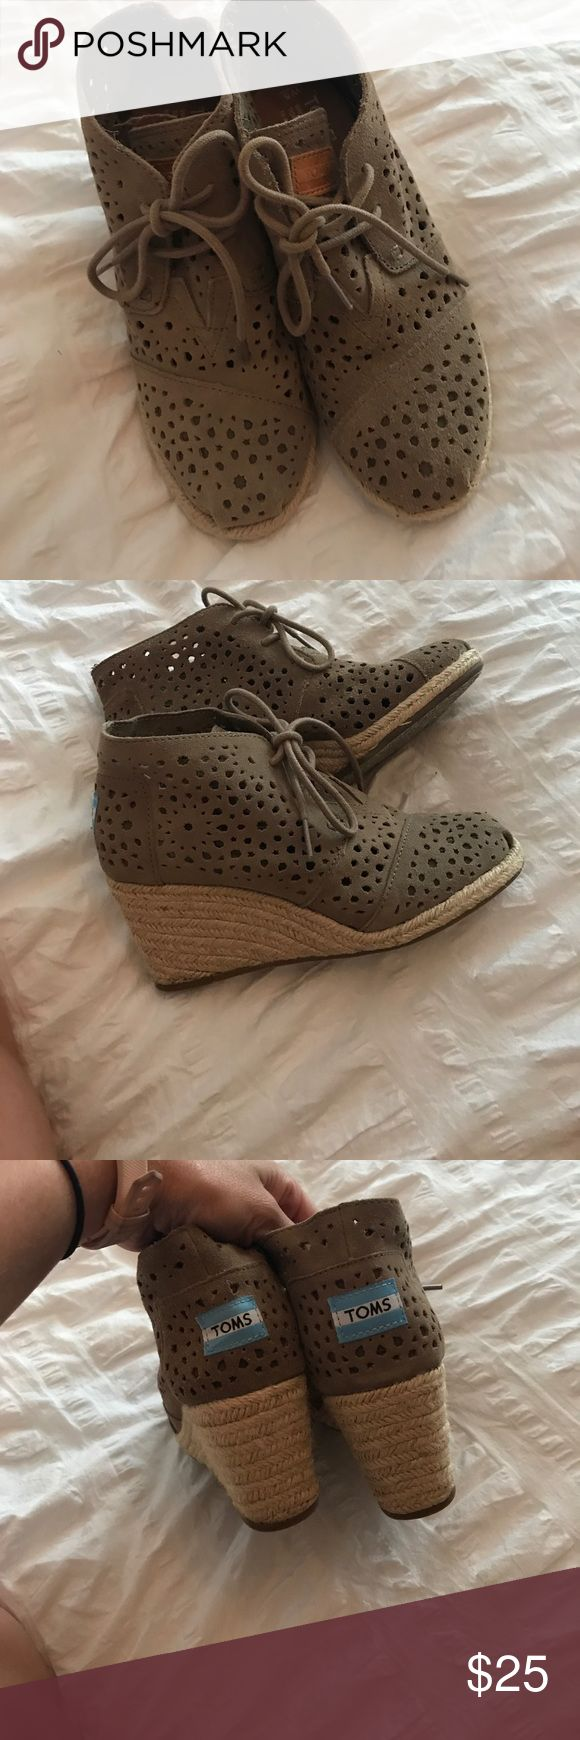 Toms wedge booties Adorable greenish gray booties size 5 EUC Toms Shoes